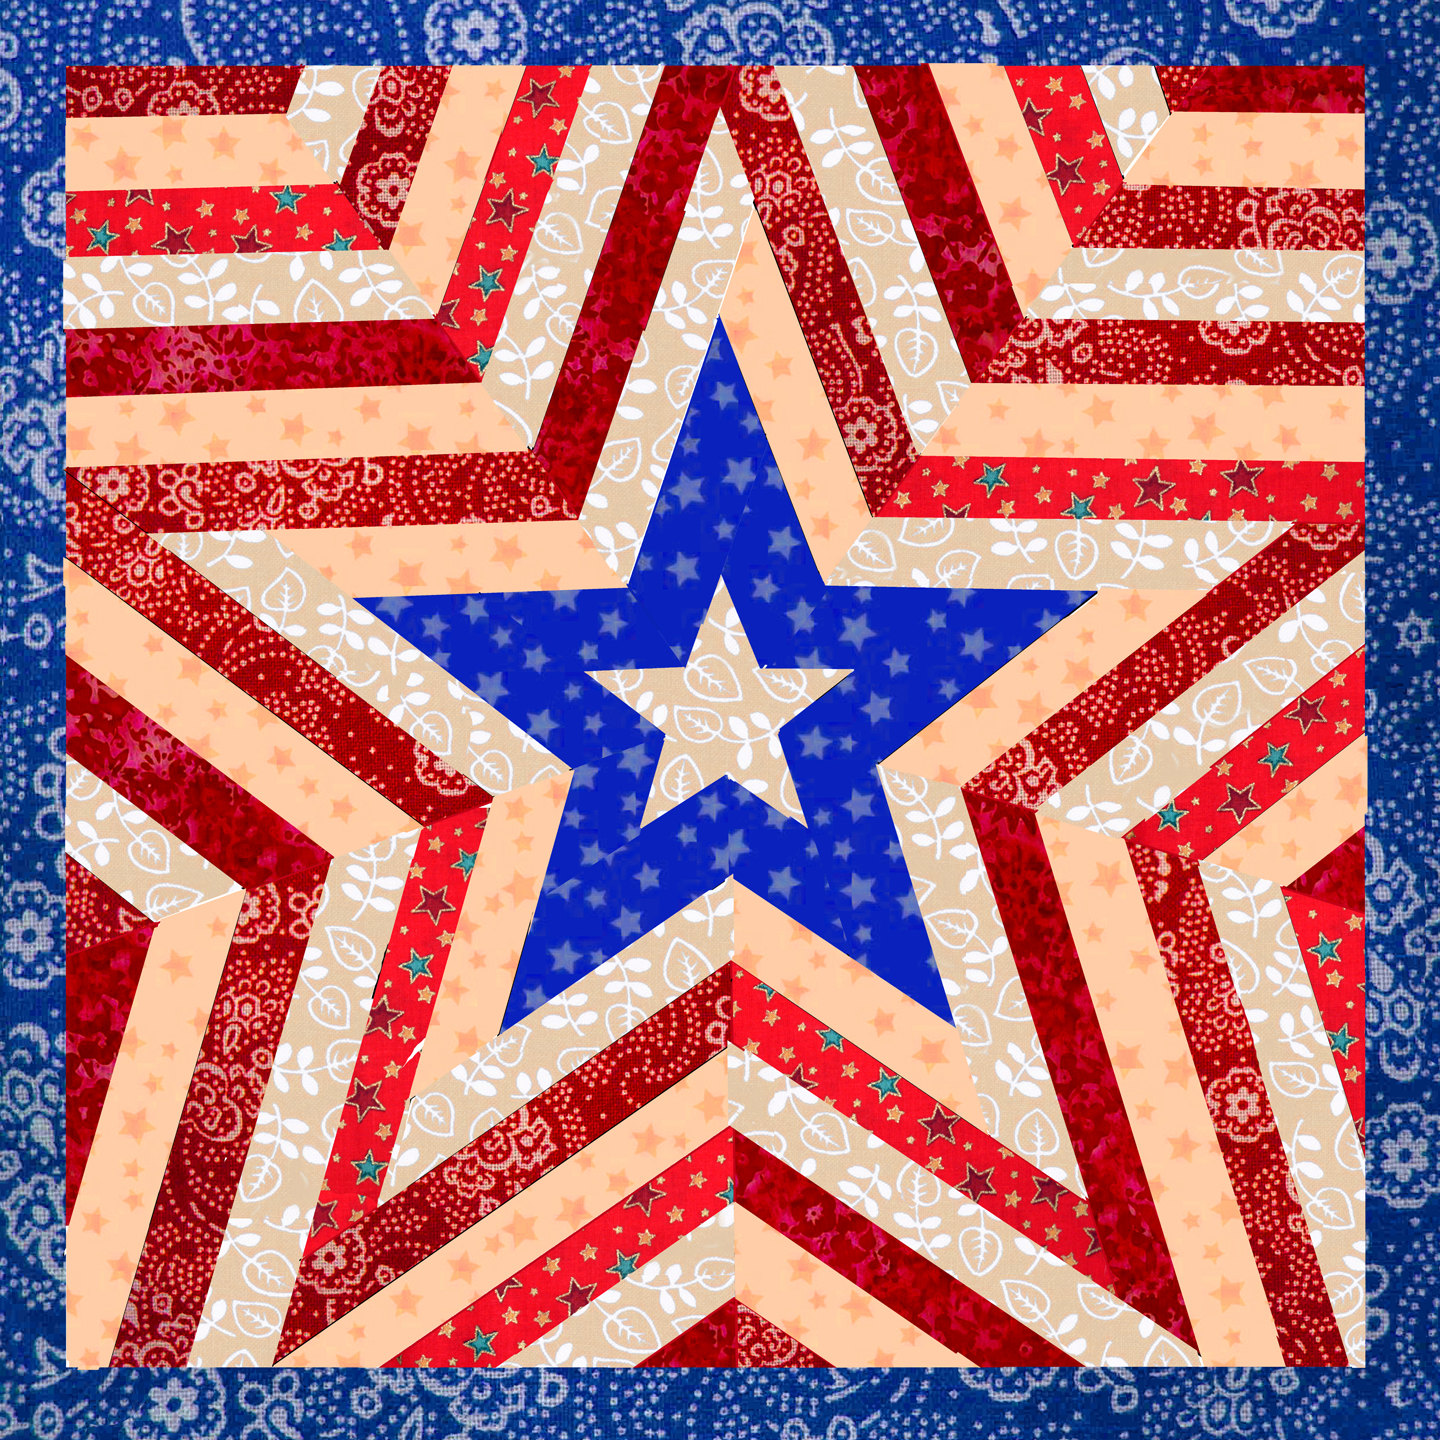 One Star Patriotic Quilt Patterns